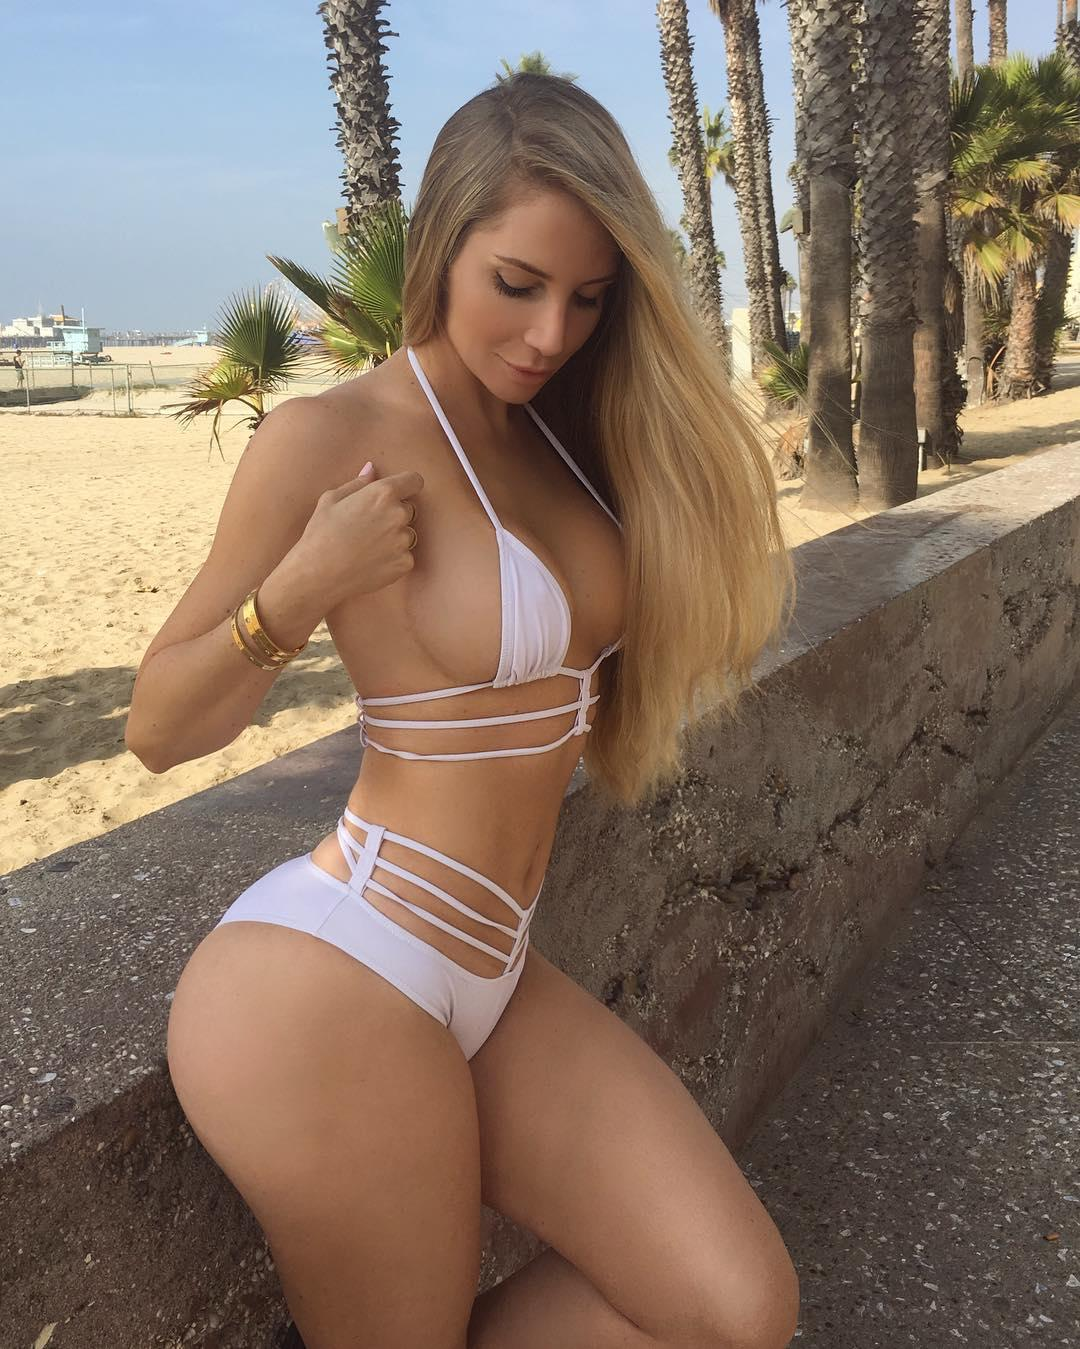 Amanda Elise Lee Big Boobs Big Booty Sport Picture and Photo